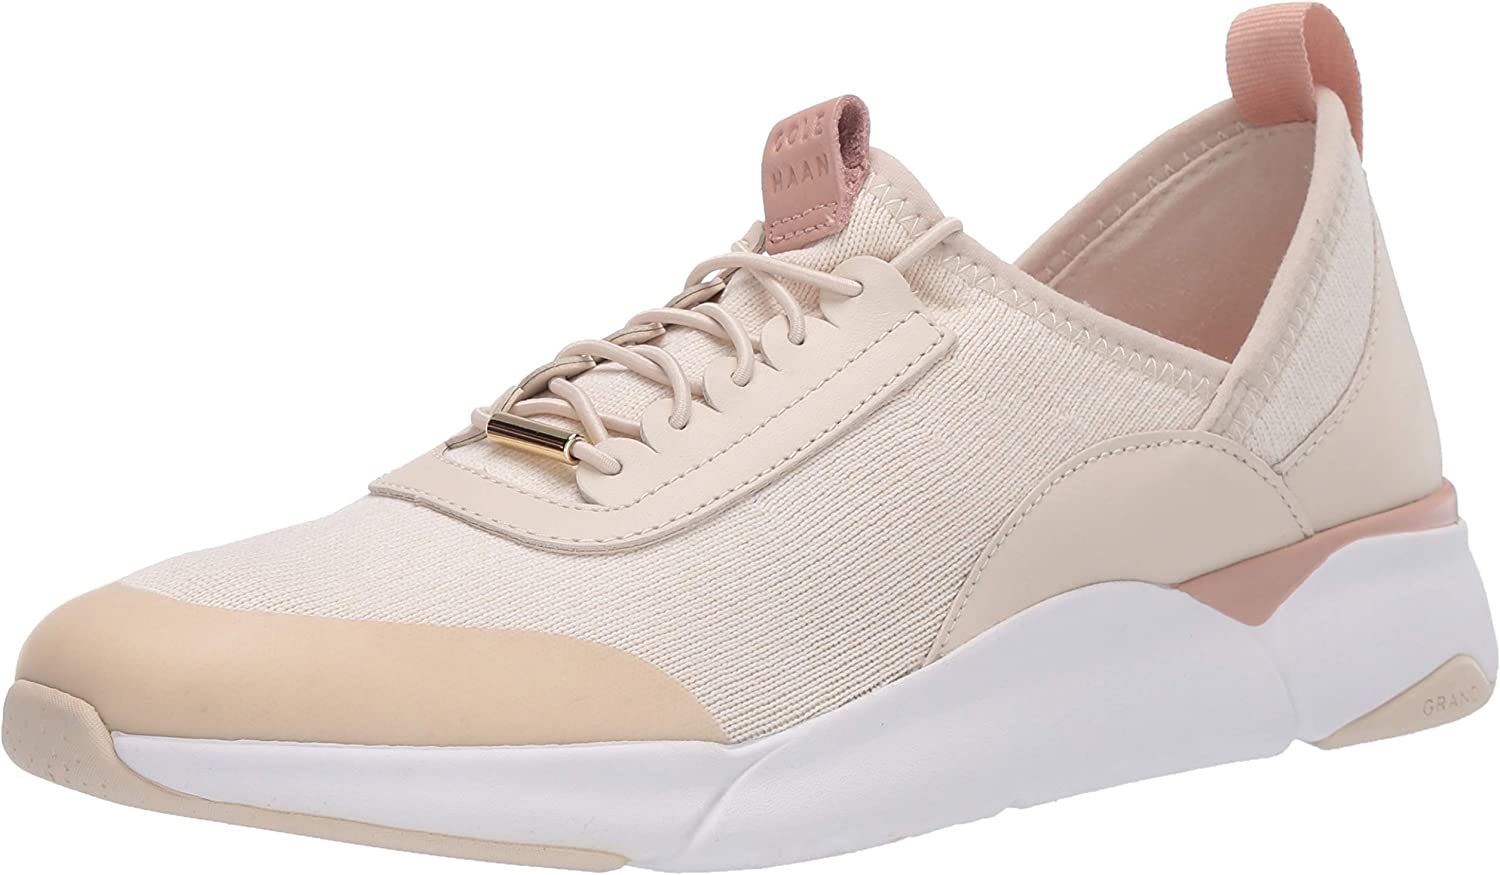 Cole Max 50% OFF Haan Women's Today's only Grand Sport Sneaker Stitchlite Trainer Knit